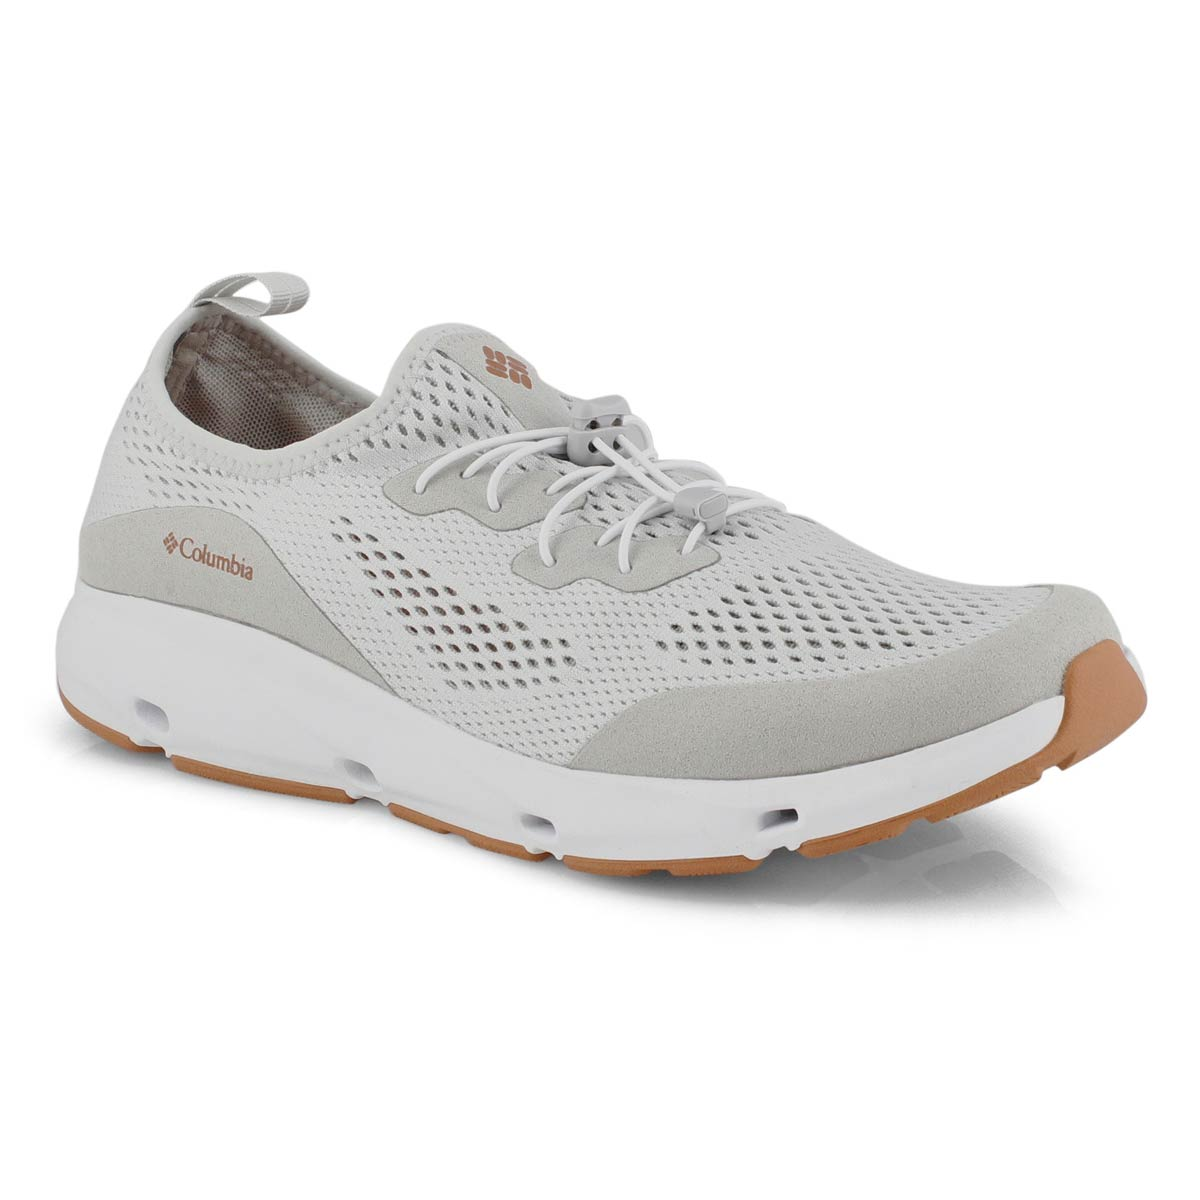 Mns Columbia Vent grey fashion sneaker